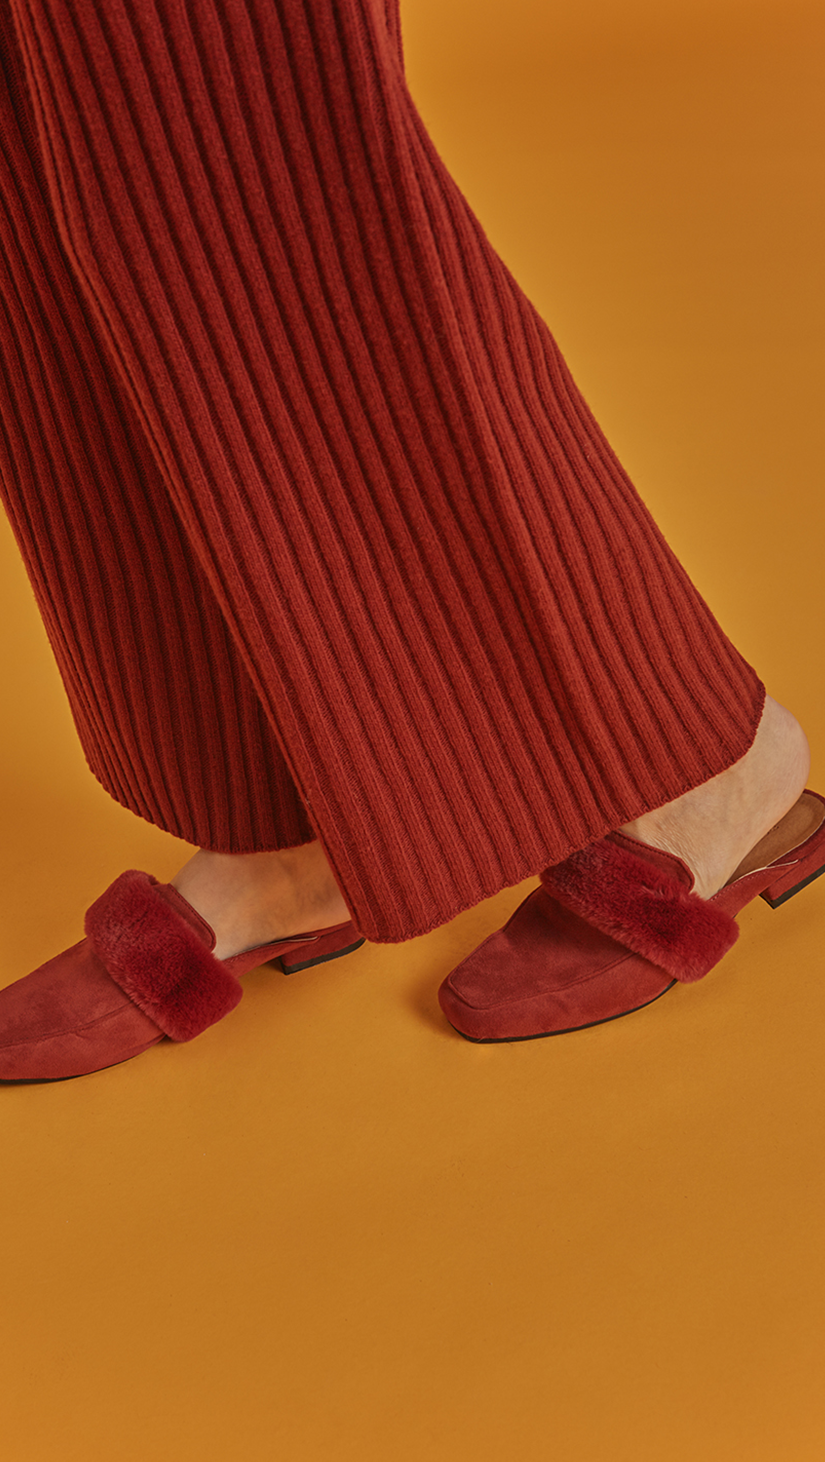 Villa Backless Loafer in Brick. Slide loafers with a almond toe, padded leather foot bed and rubber soles. Slip on. Short, soft faux fur.